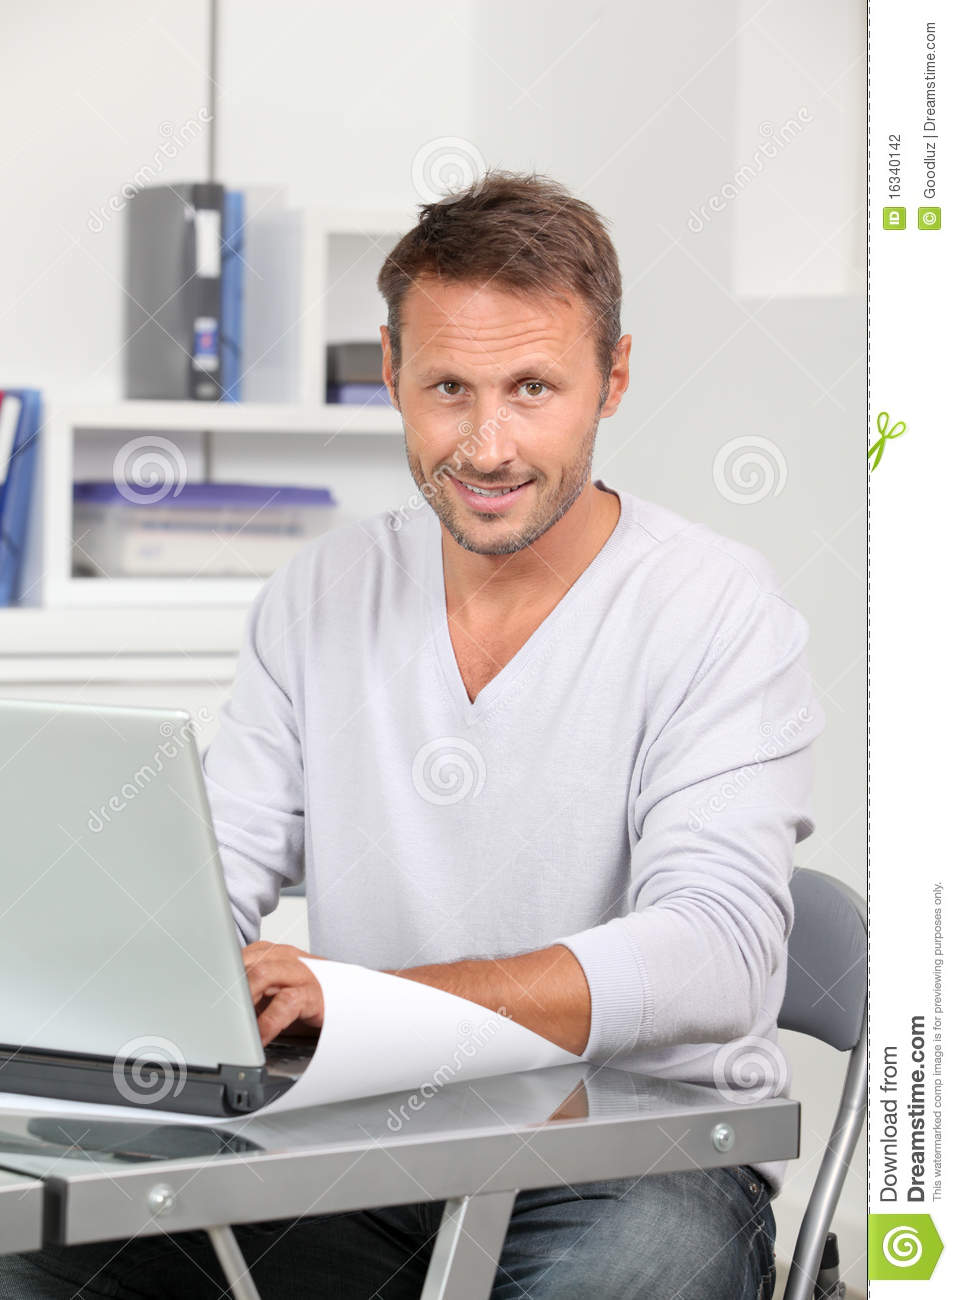 Stock photography man working on laptop computer